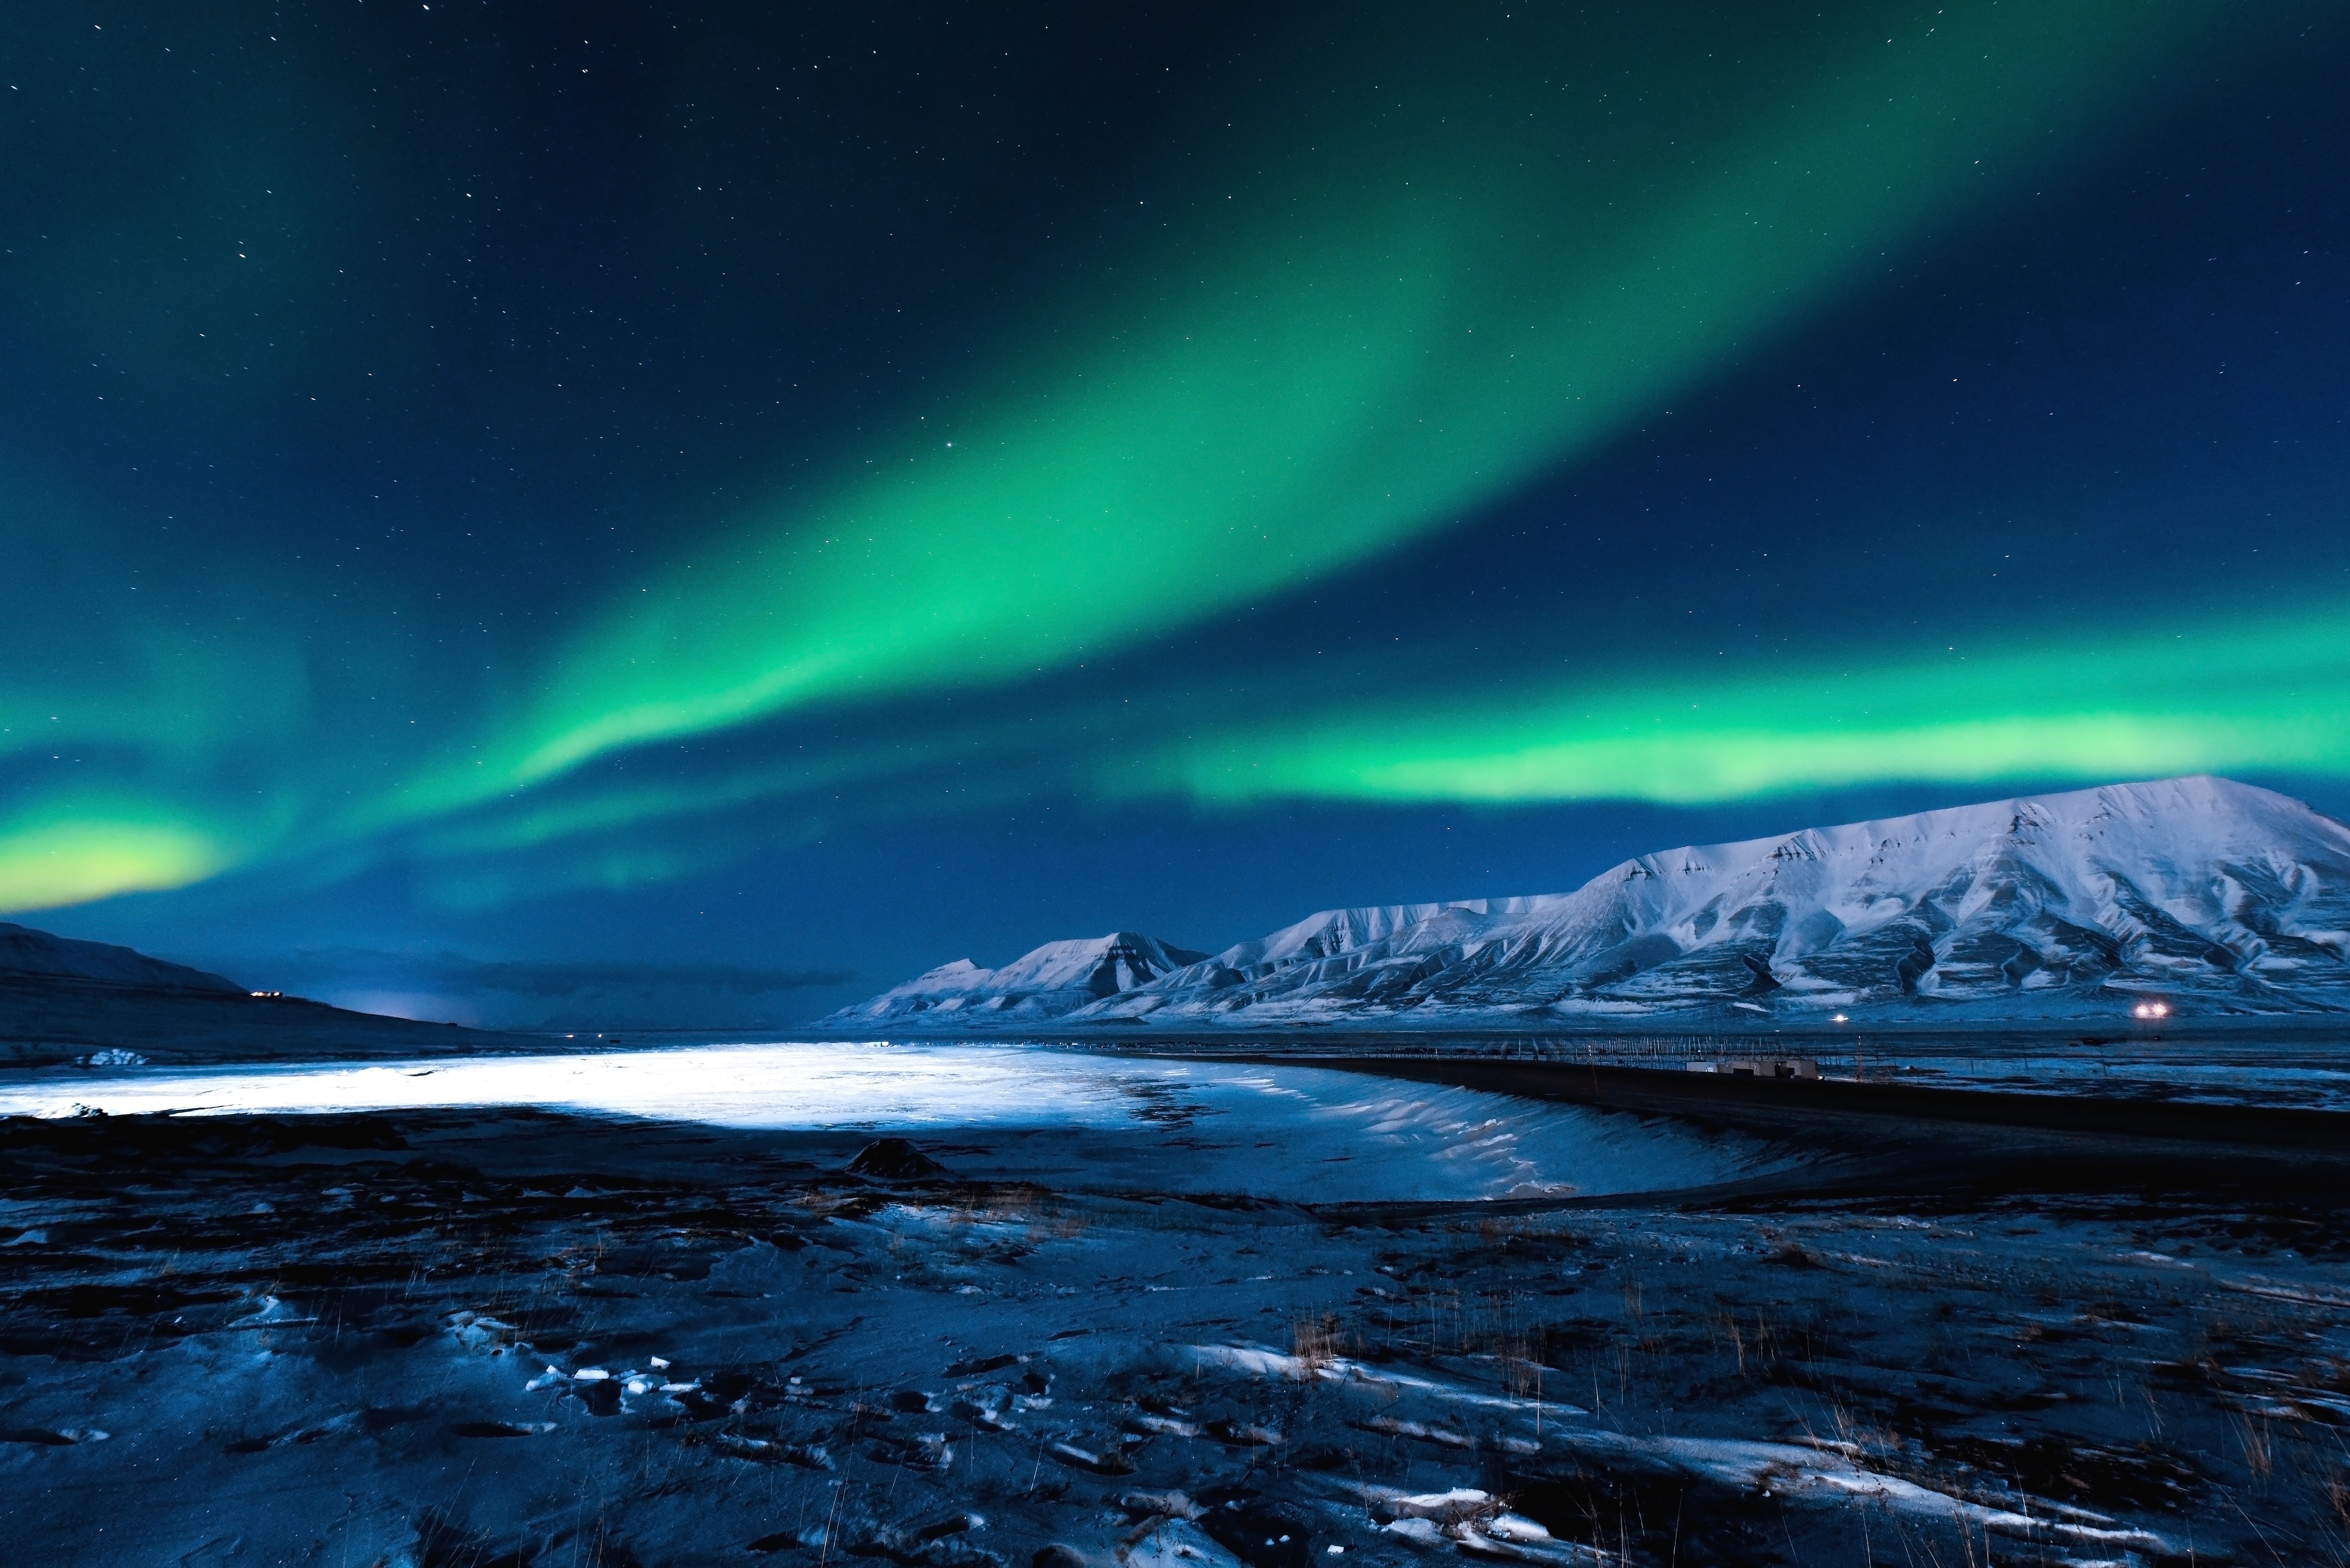 The polar Northern lights in Norway Svalbard in the mountains - Image [Shutterstock]